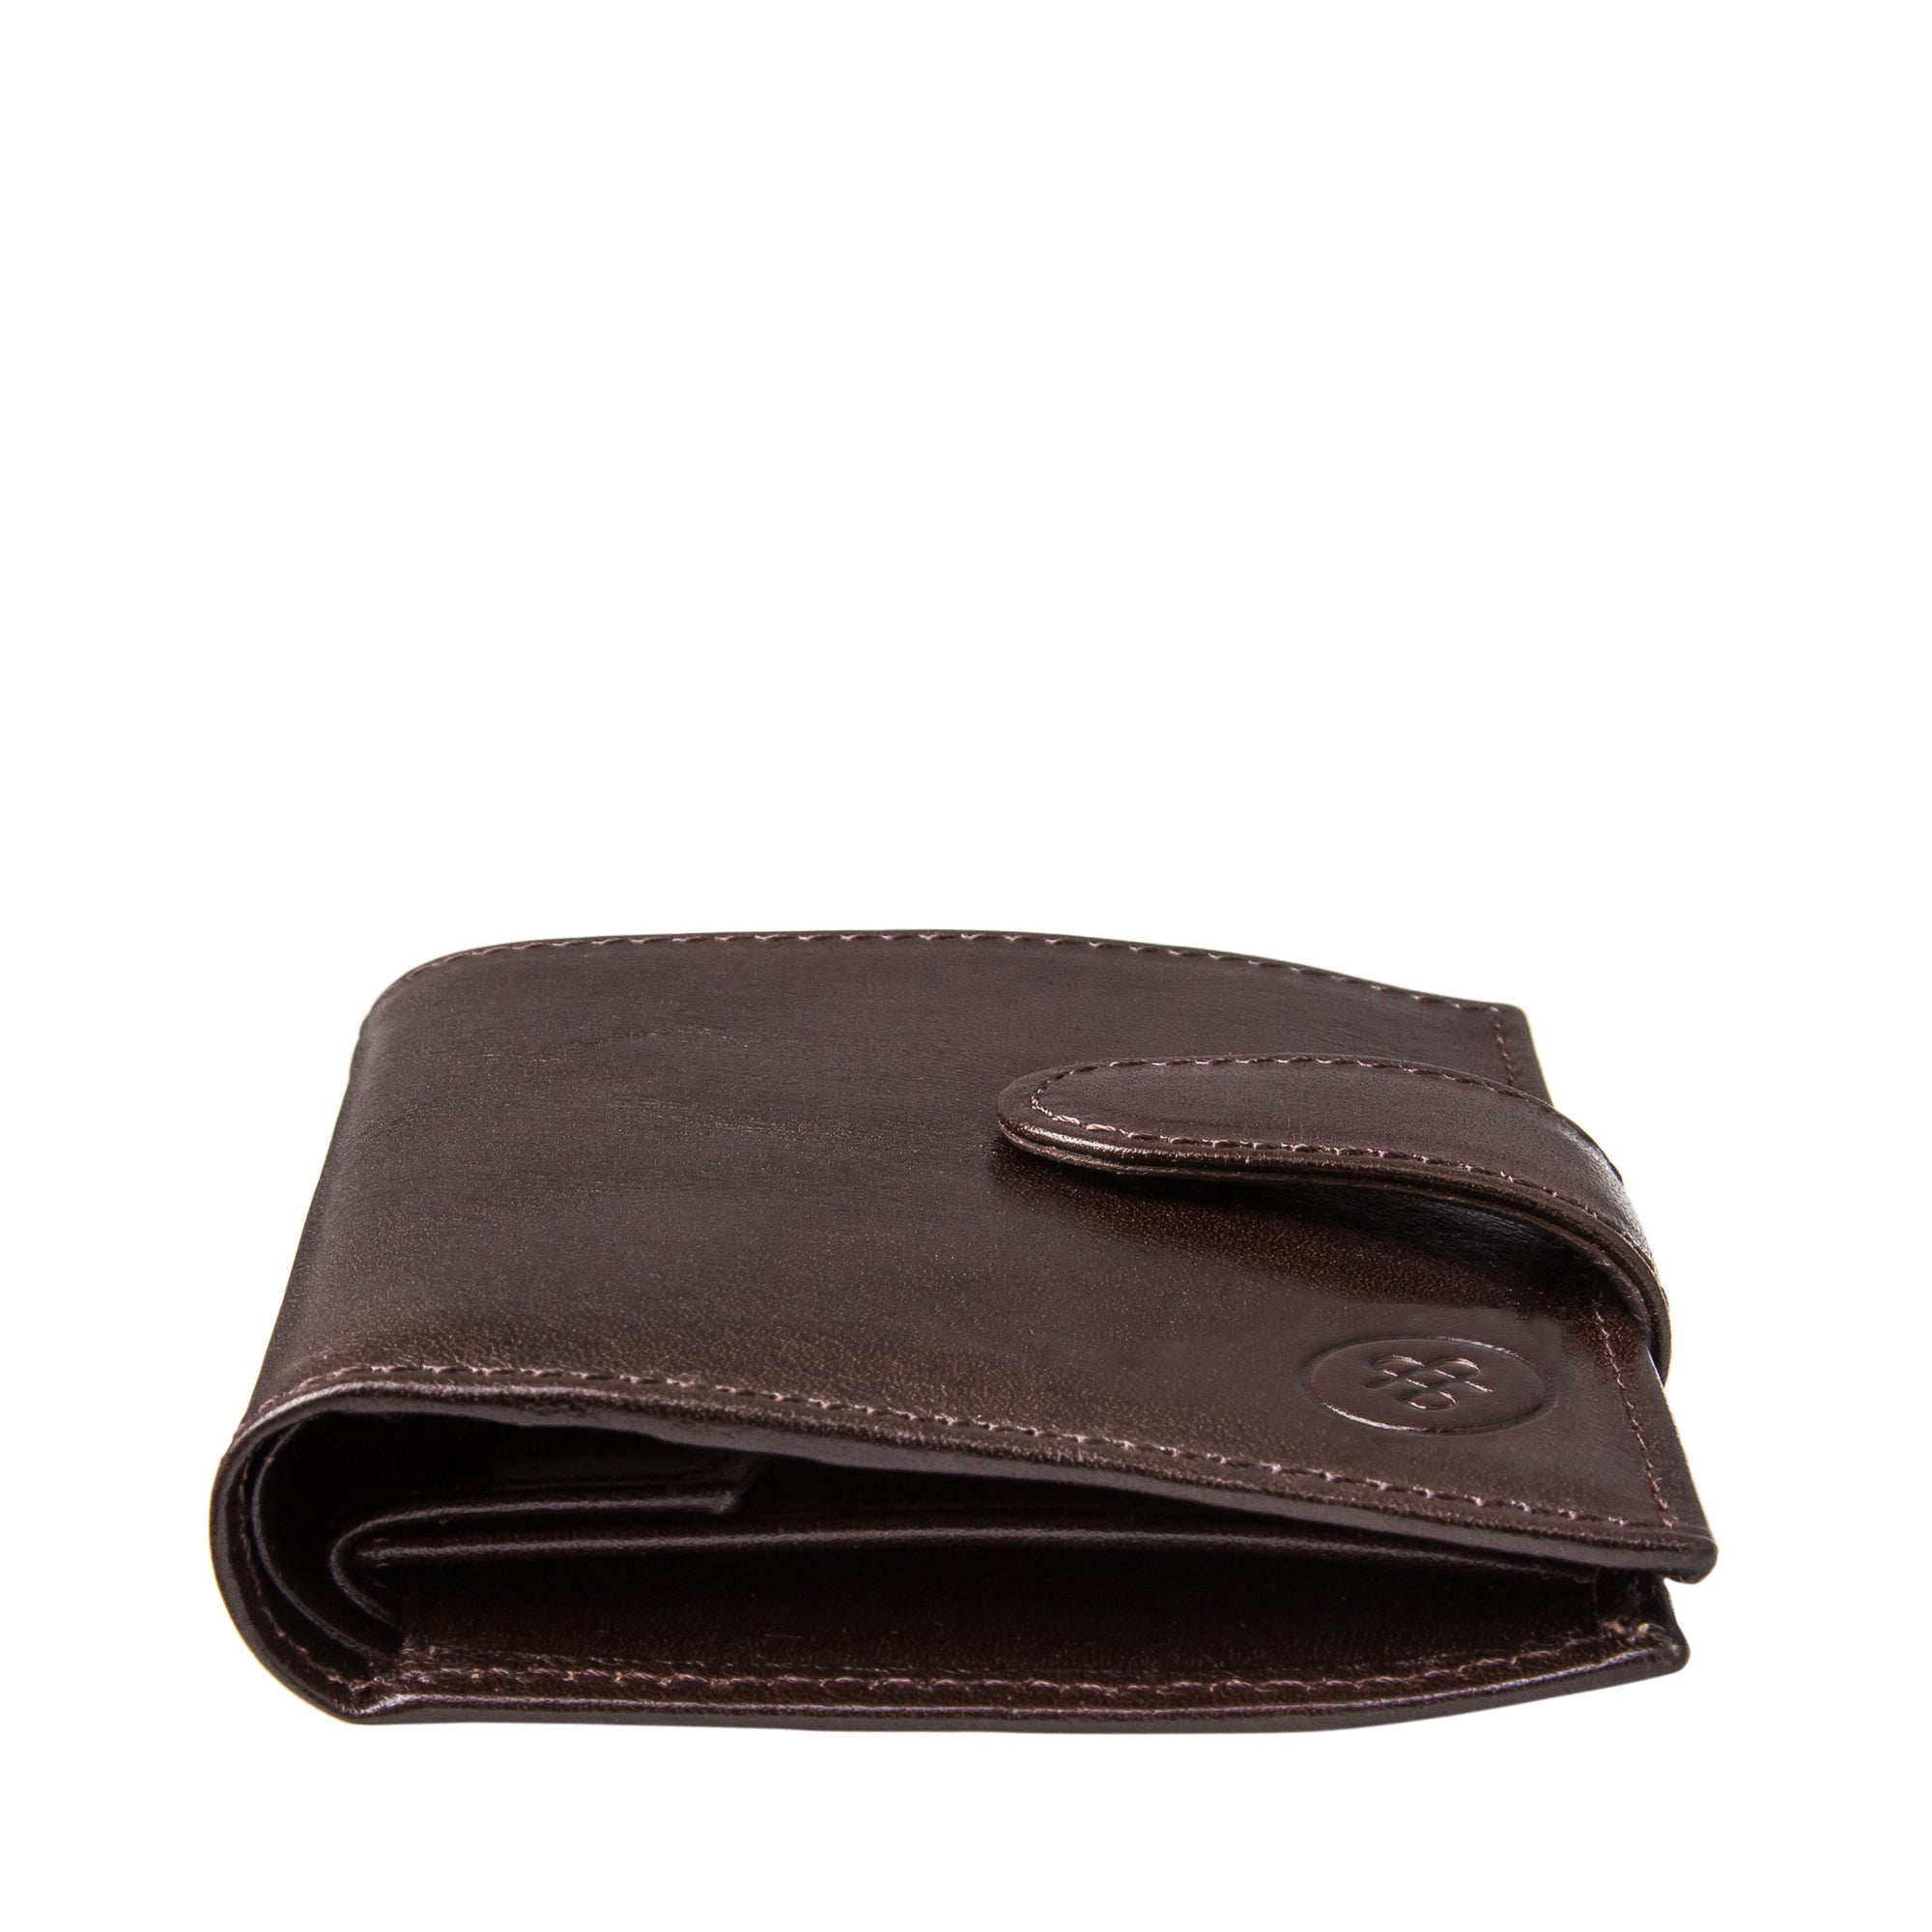 Image 6 of the 'Pietre' Brown Veg-Tanned Leather Compact Wallet